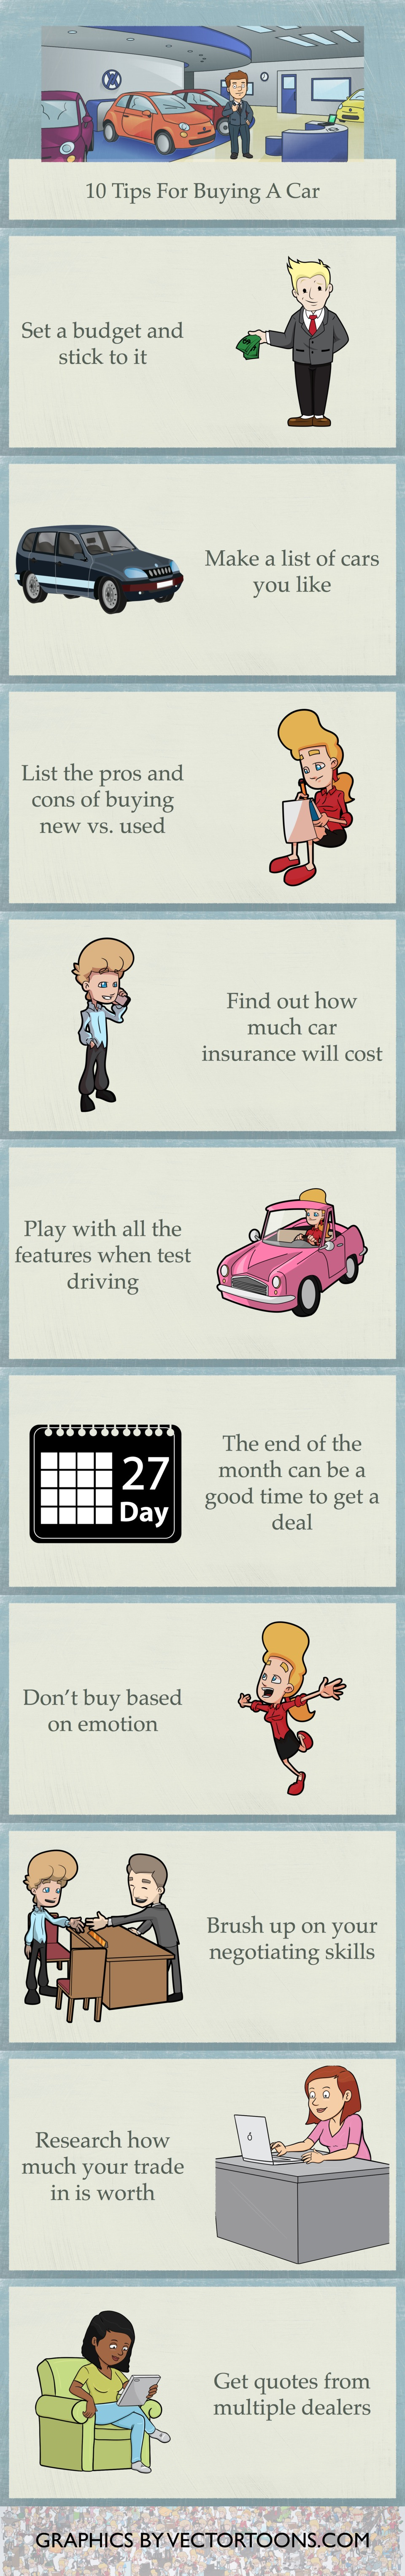 10 10 tips for car buying - Infographic 10 Tips For Buying A Car